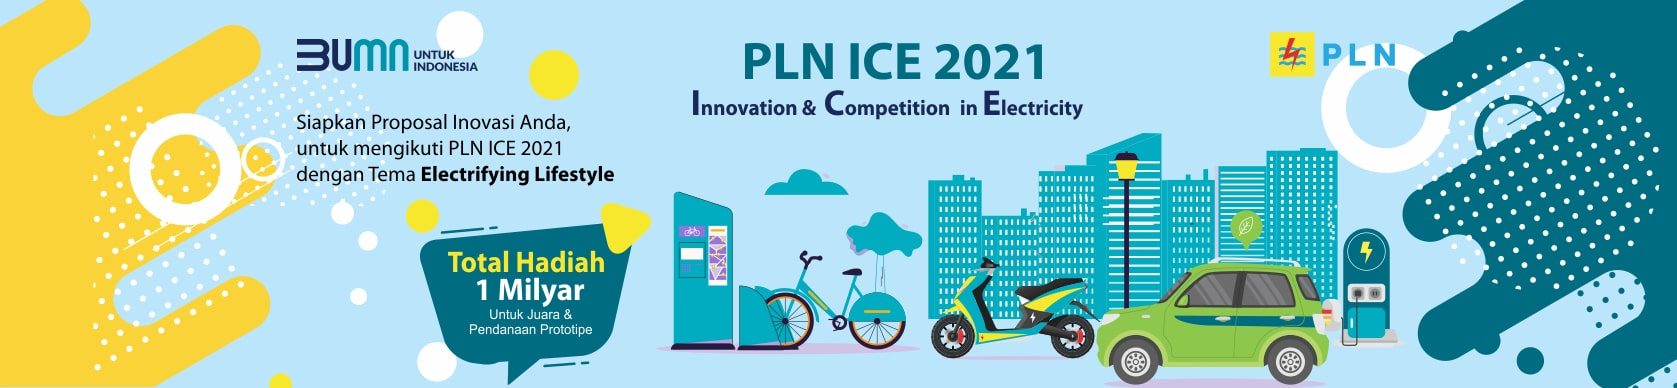 PLN ICE (Innovation and Competition in Electricity) Tahun 2021